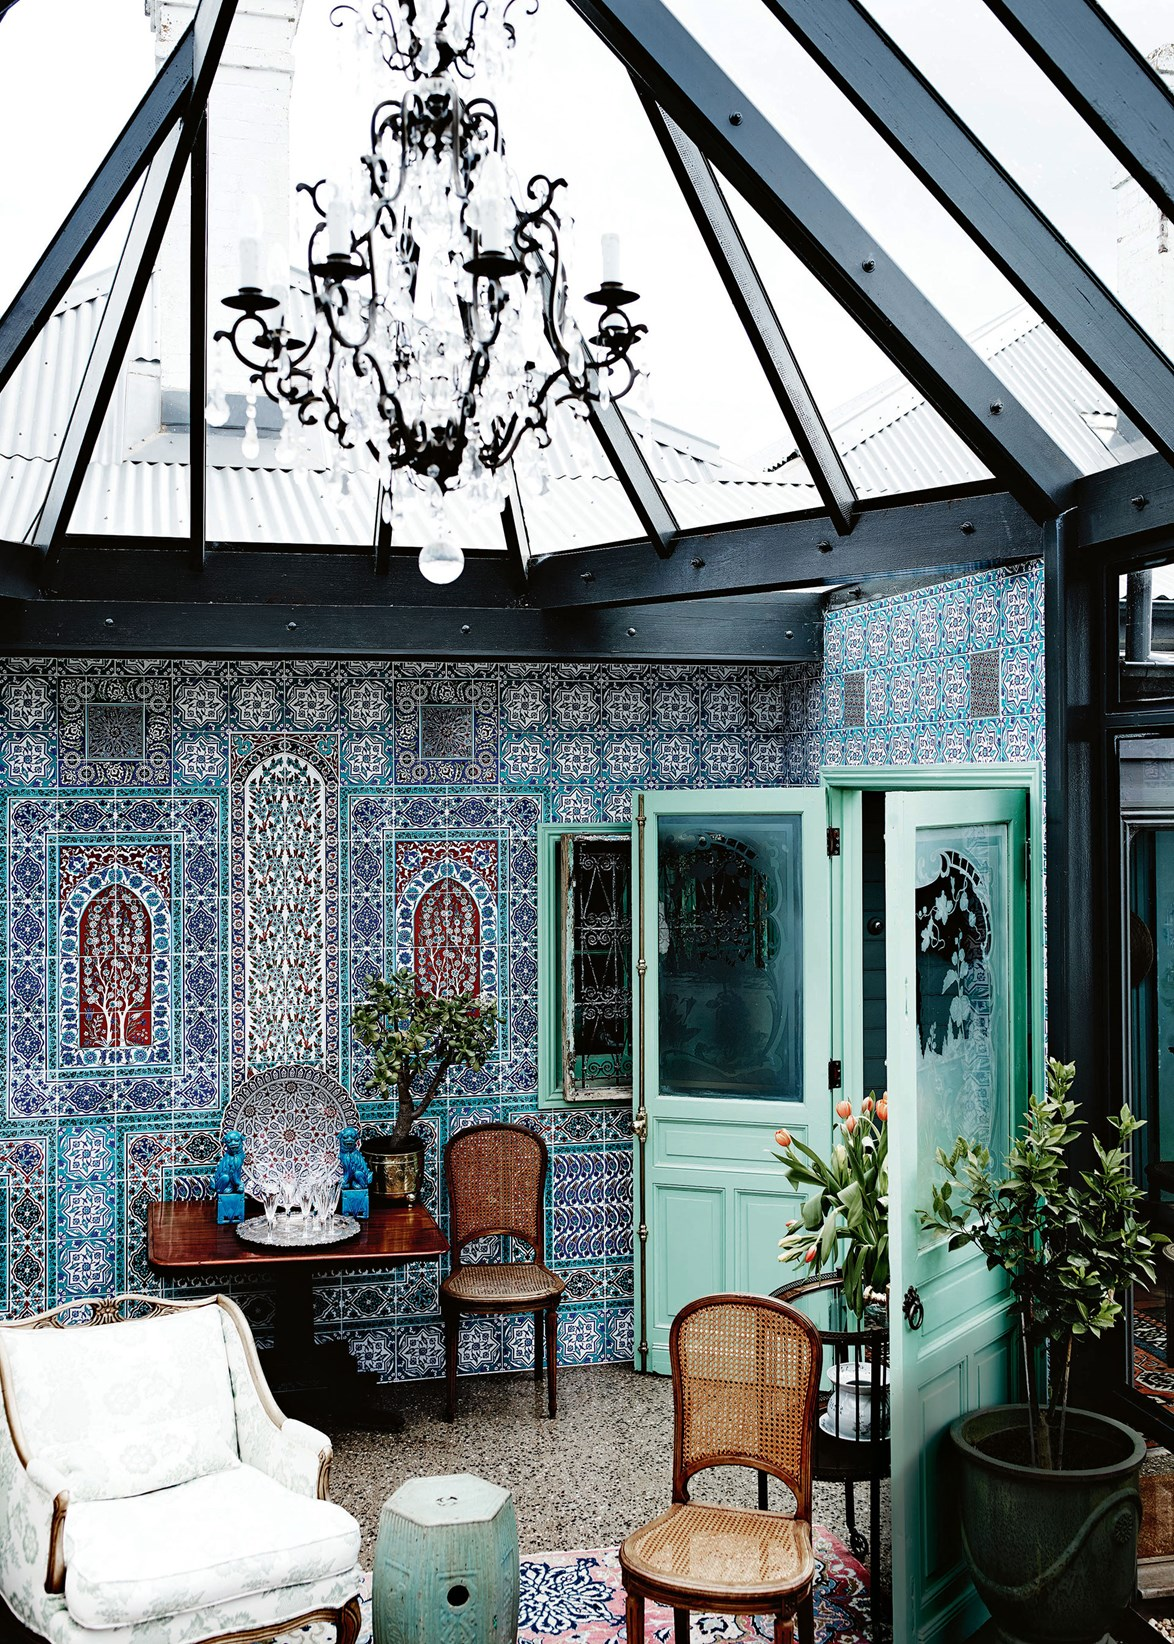 """After restoring a [heritage cottage in Hepburn Springs](https://www.homestolove.com.au/home-restoration-hepburn-springs-13558